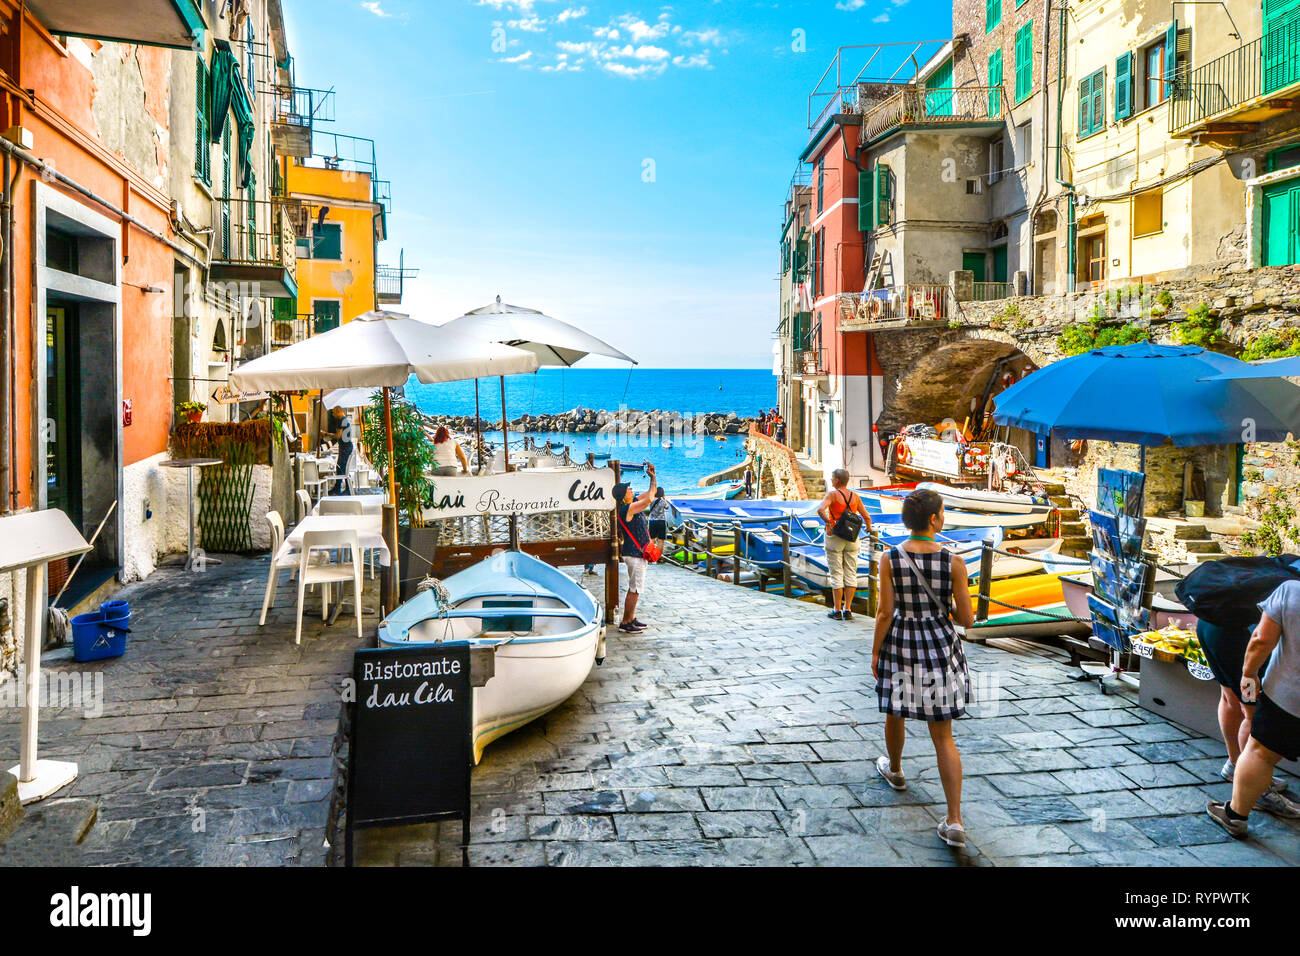 Tourists enjoy a sunny day on the Ligurian coast with the sea, cafe and boats in Riomaggiore Italy, on the Cinque Terre of the Italian Riviera Stock Photo